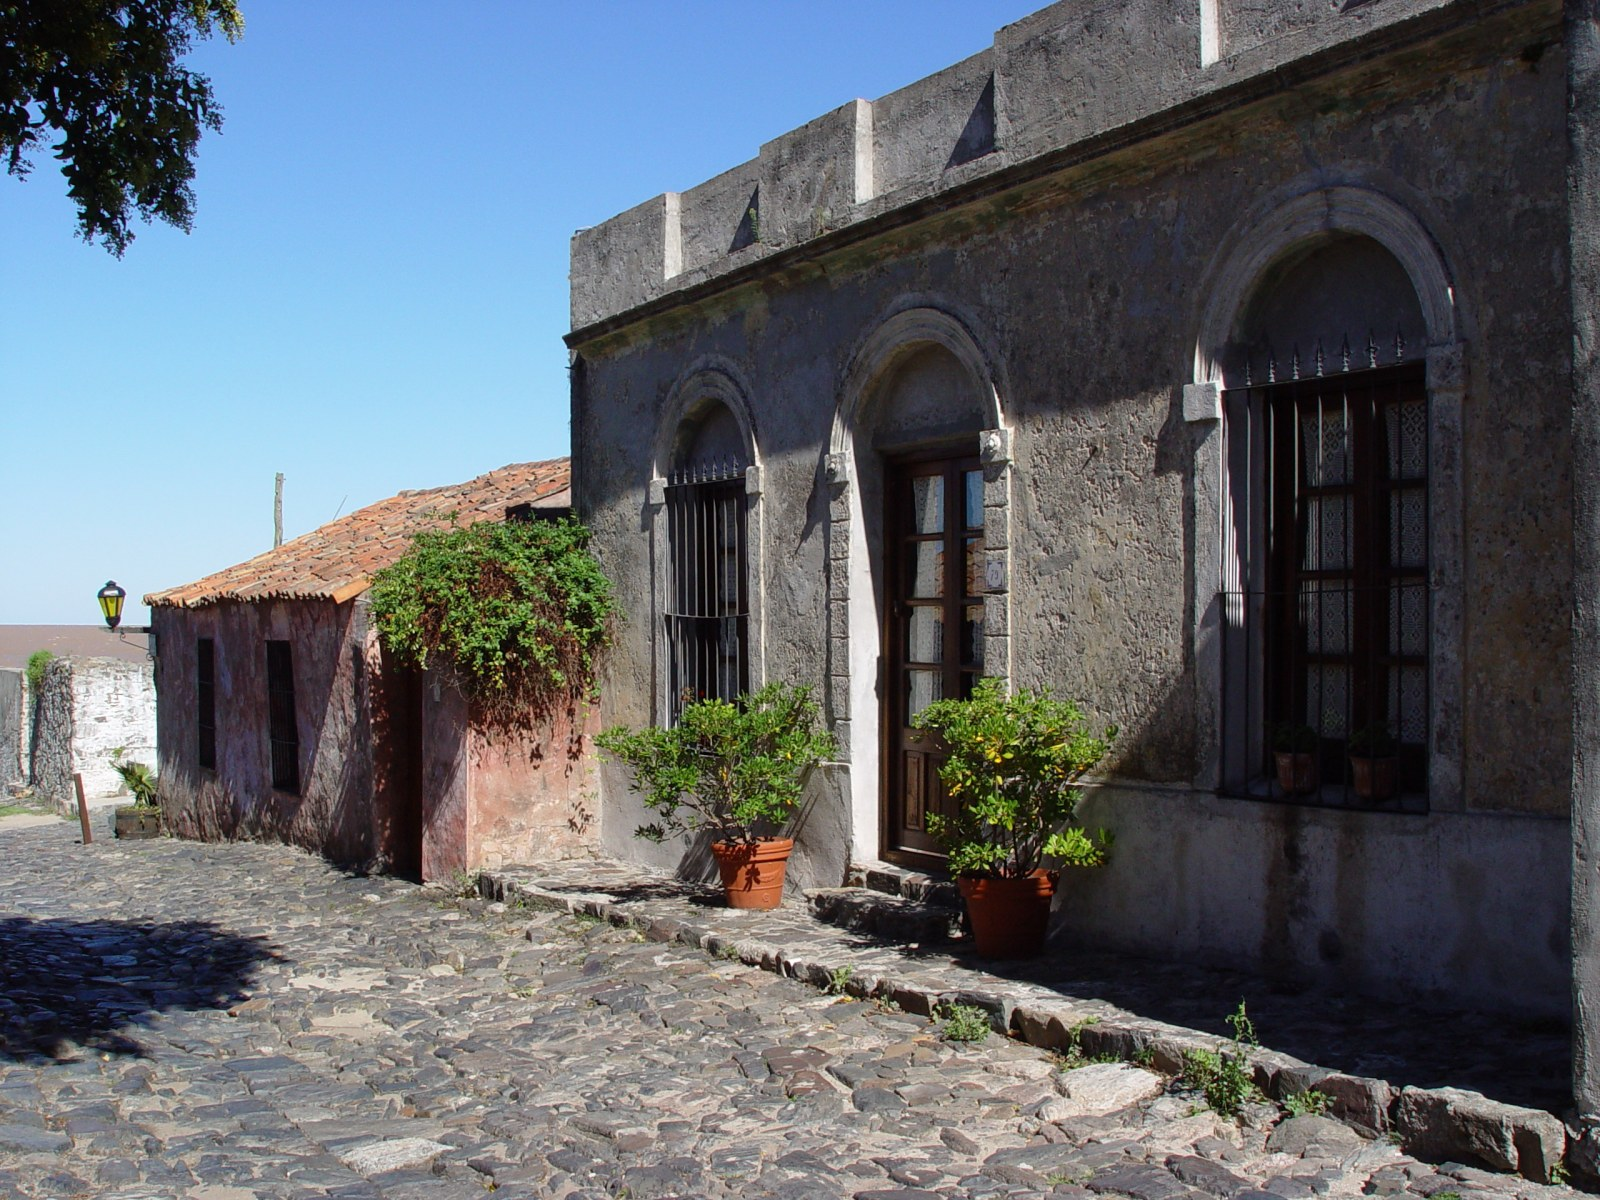 Colonia del Sacramento, Uruguay, Supplier Photo (Lures tours)